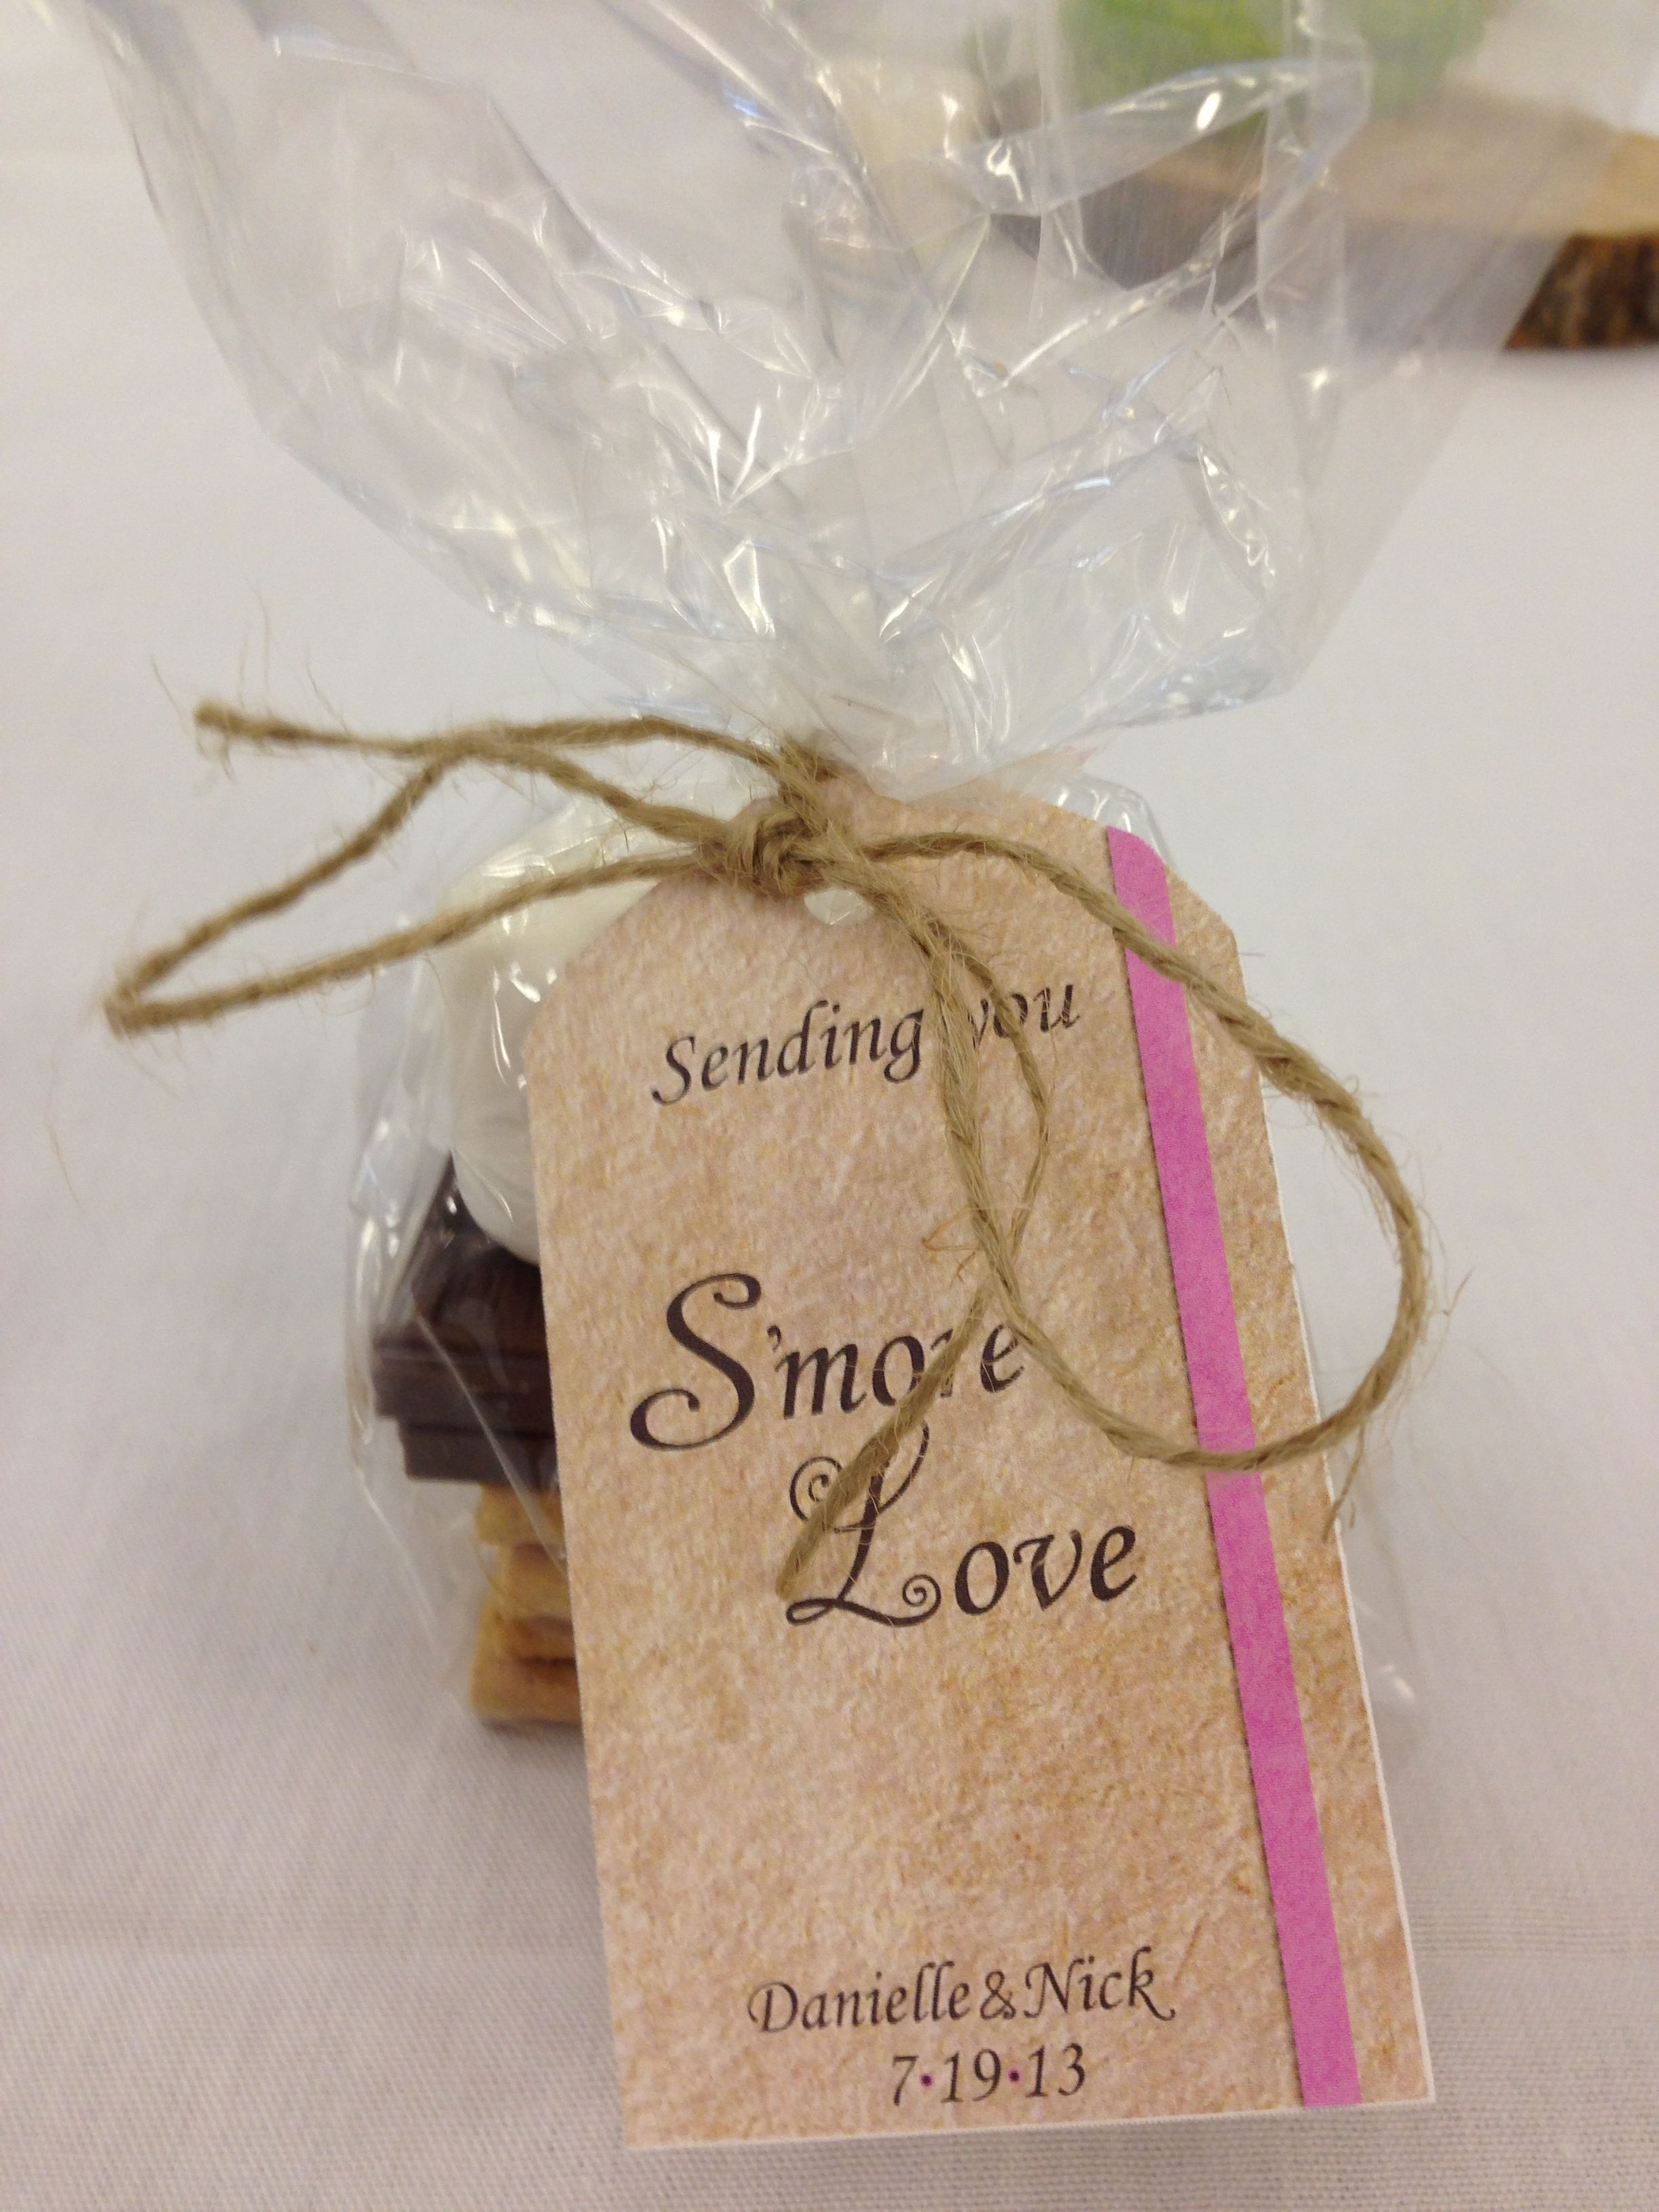 Wedding Favors Rehearsal Night Take Aways Opt Out Of The Standard Chocolate And Use A High End Organic That Has Burnt Orange